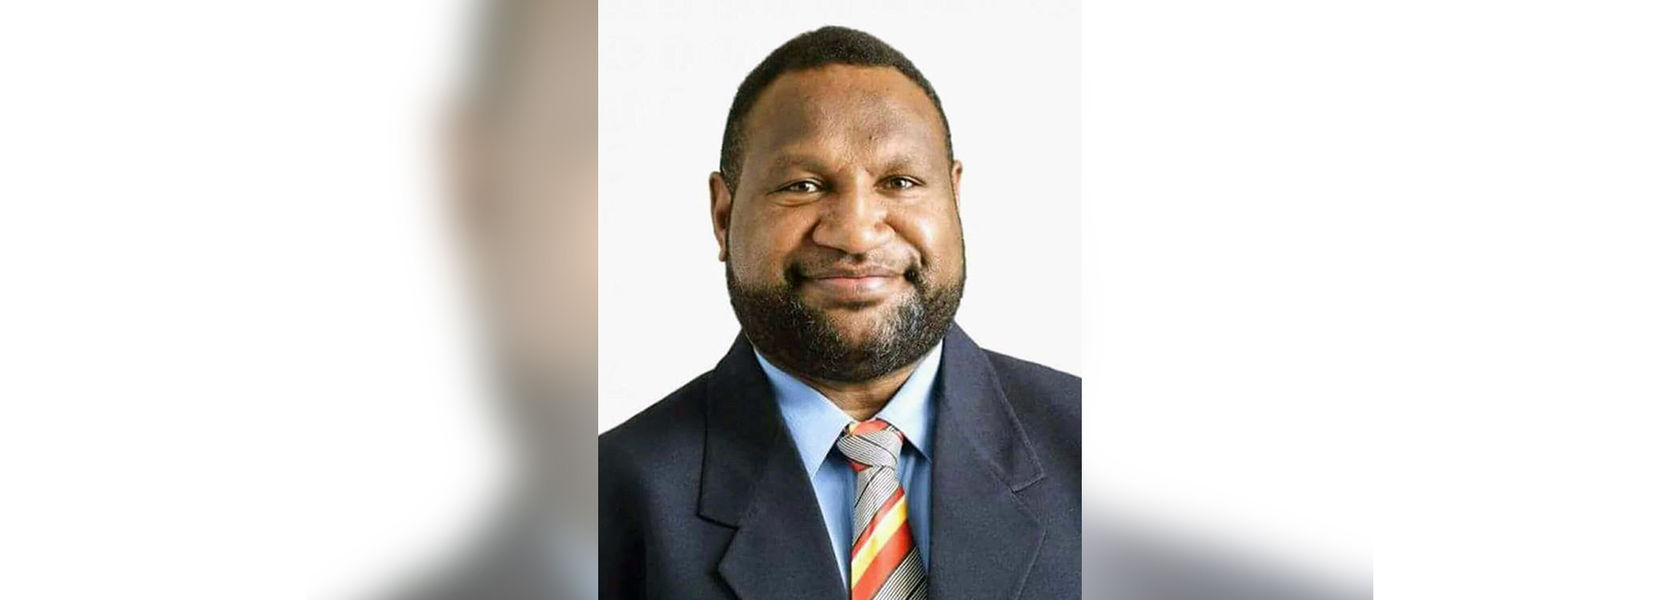 Australia says 'no' to PNG request